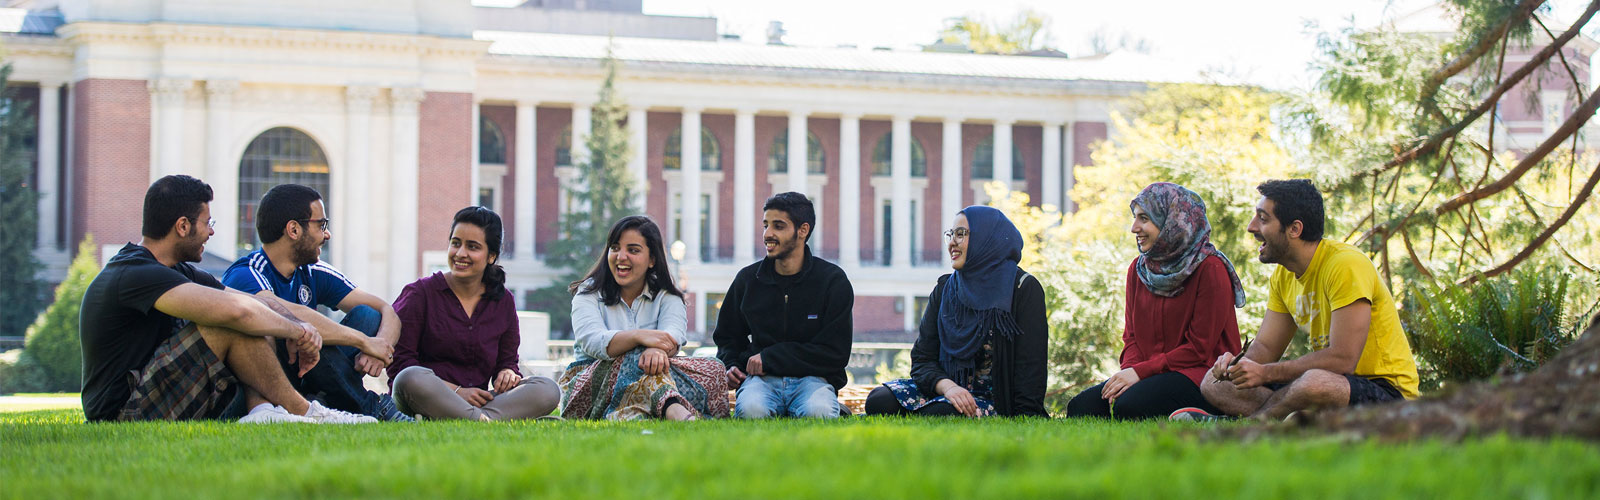 group of students sitting and talking on lawn